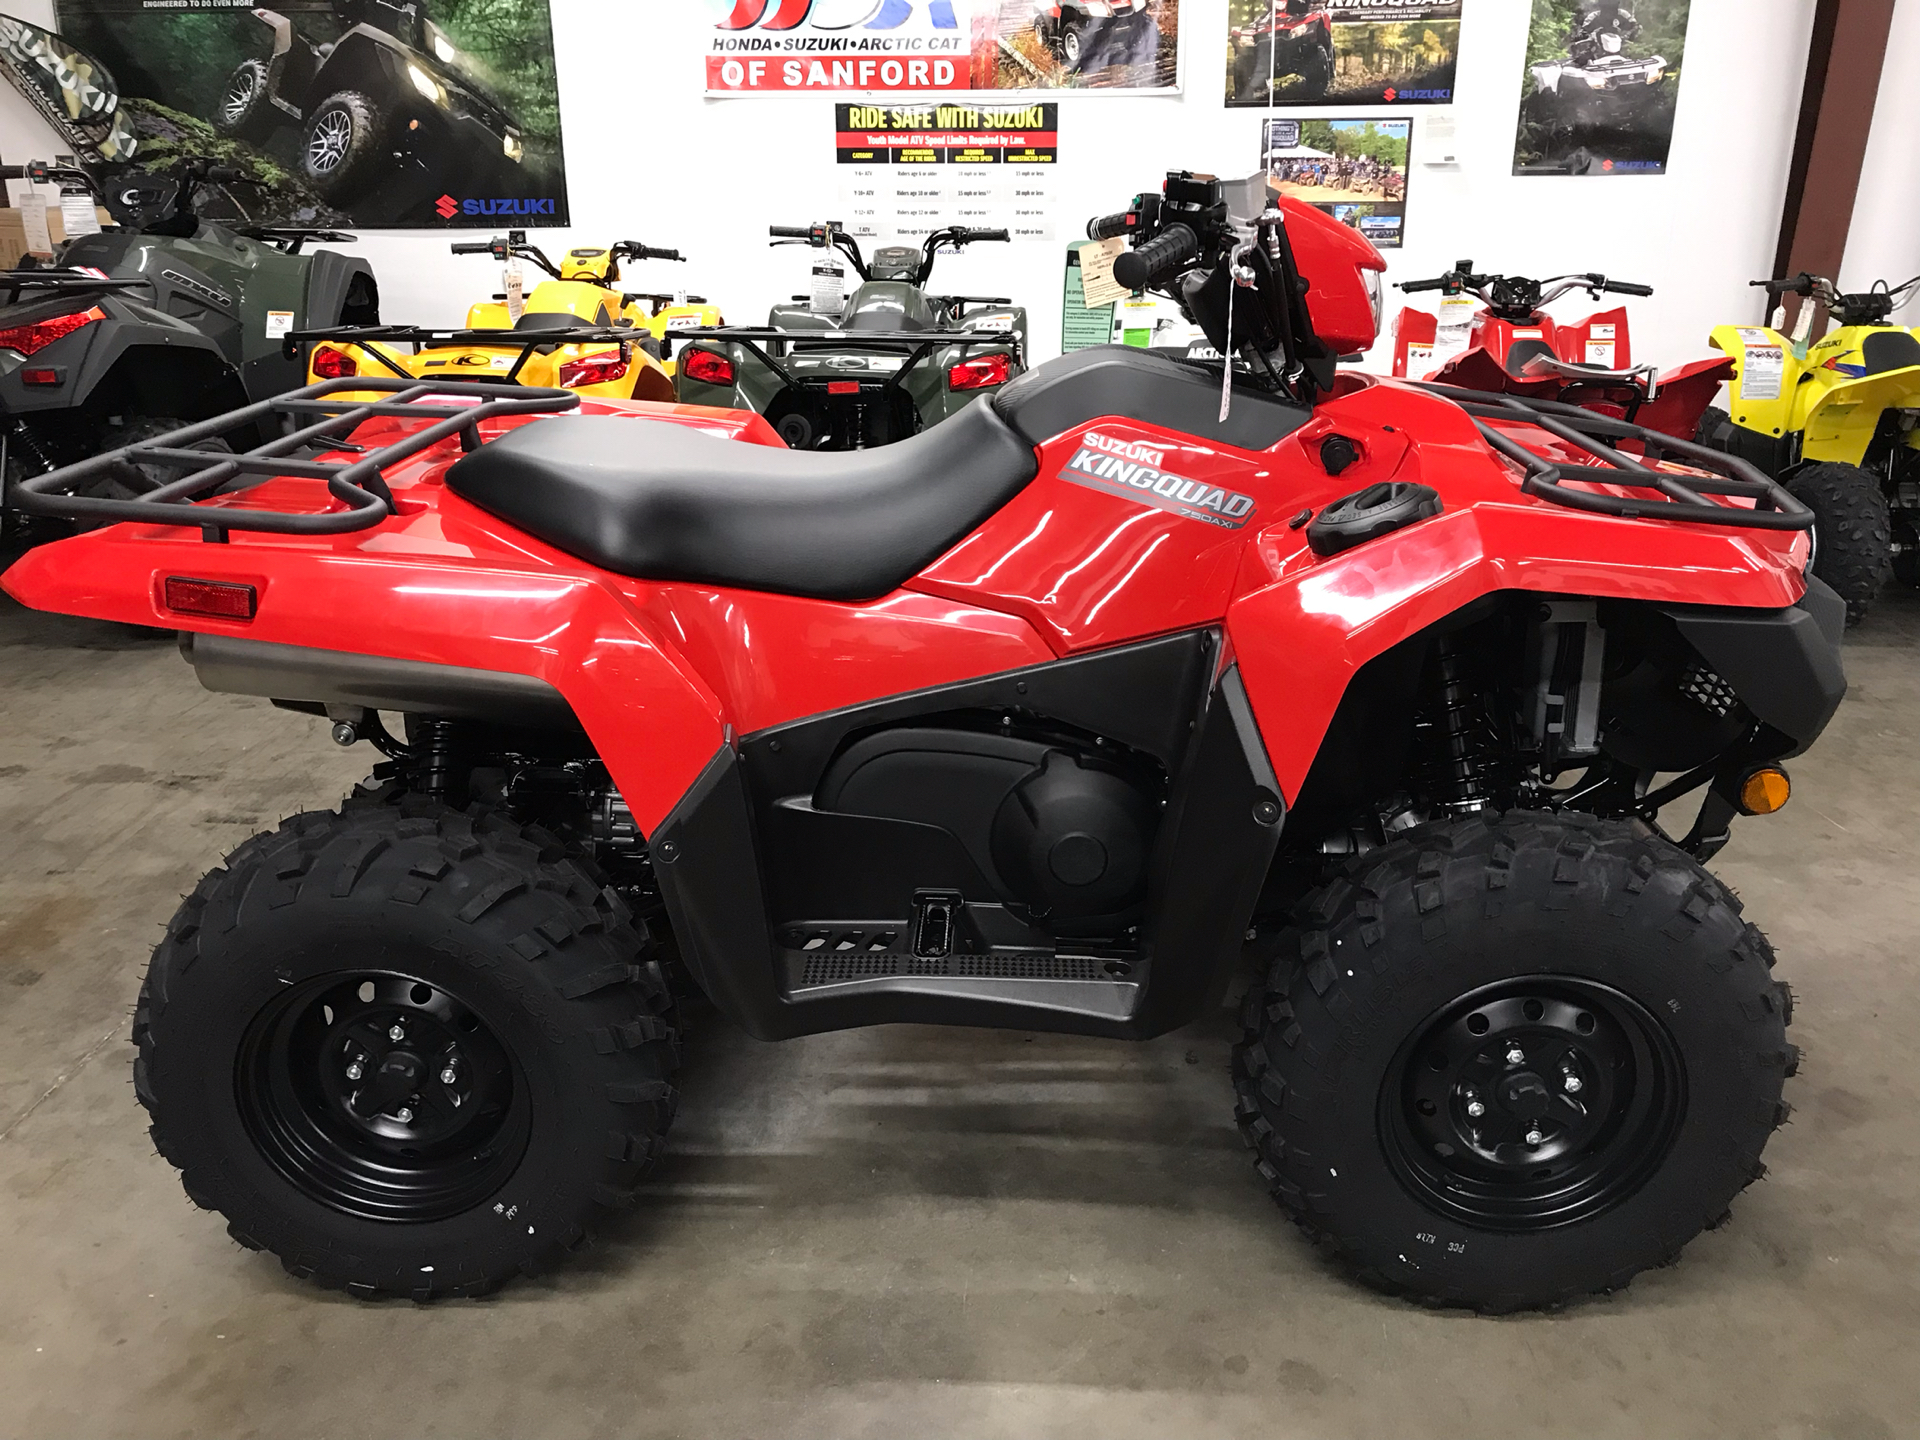 2020 Suzuki KingQuad 750AXi Power Steering in Sanford, North Carolina - Photo 3